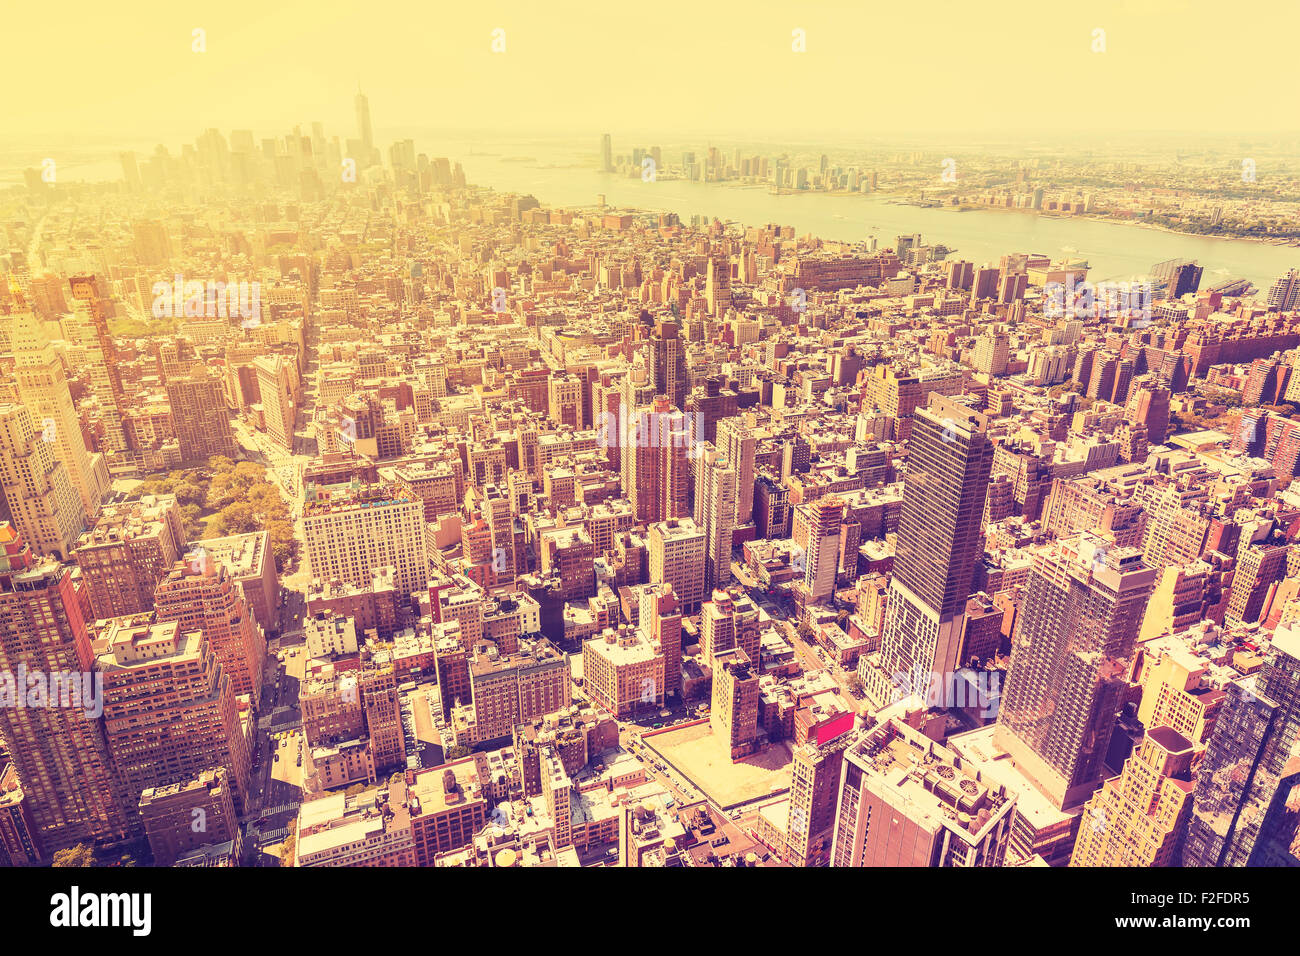 Vintage filtered picture of sunset over Manhattan, New York City downtown, USA. - Stock Image